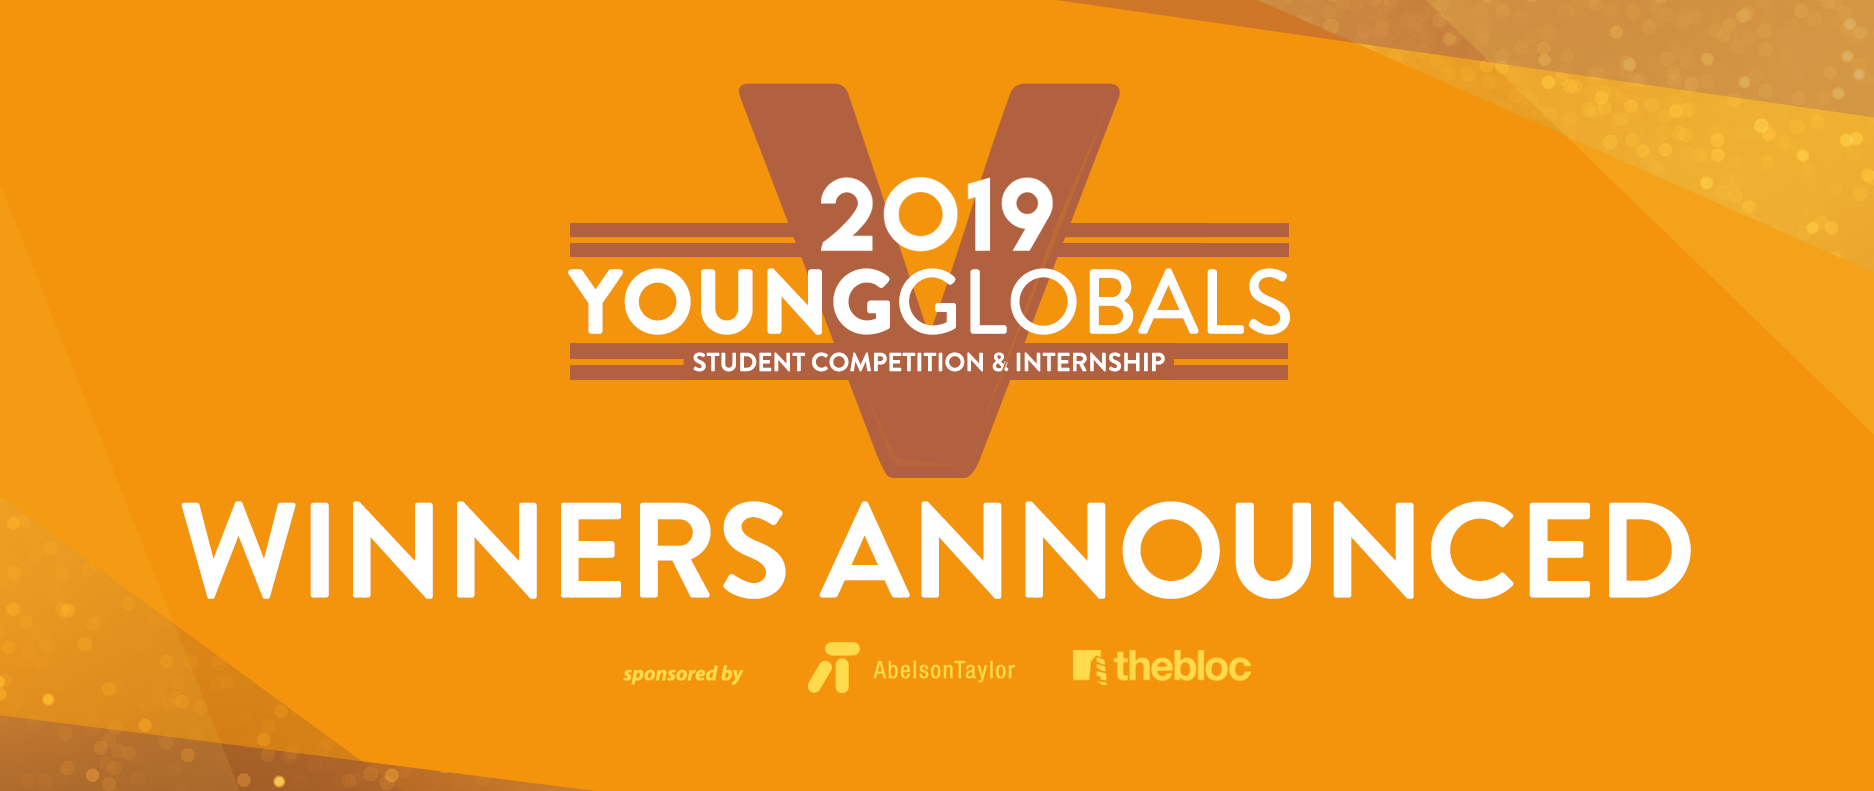 Youngglobals_winners_2019.png